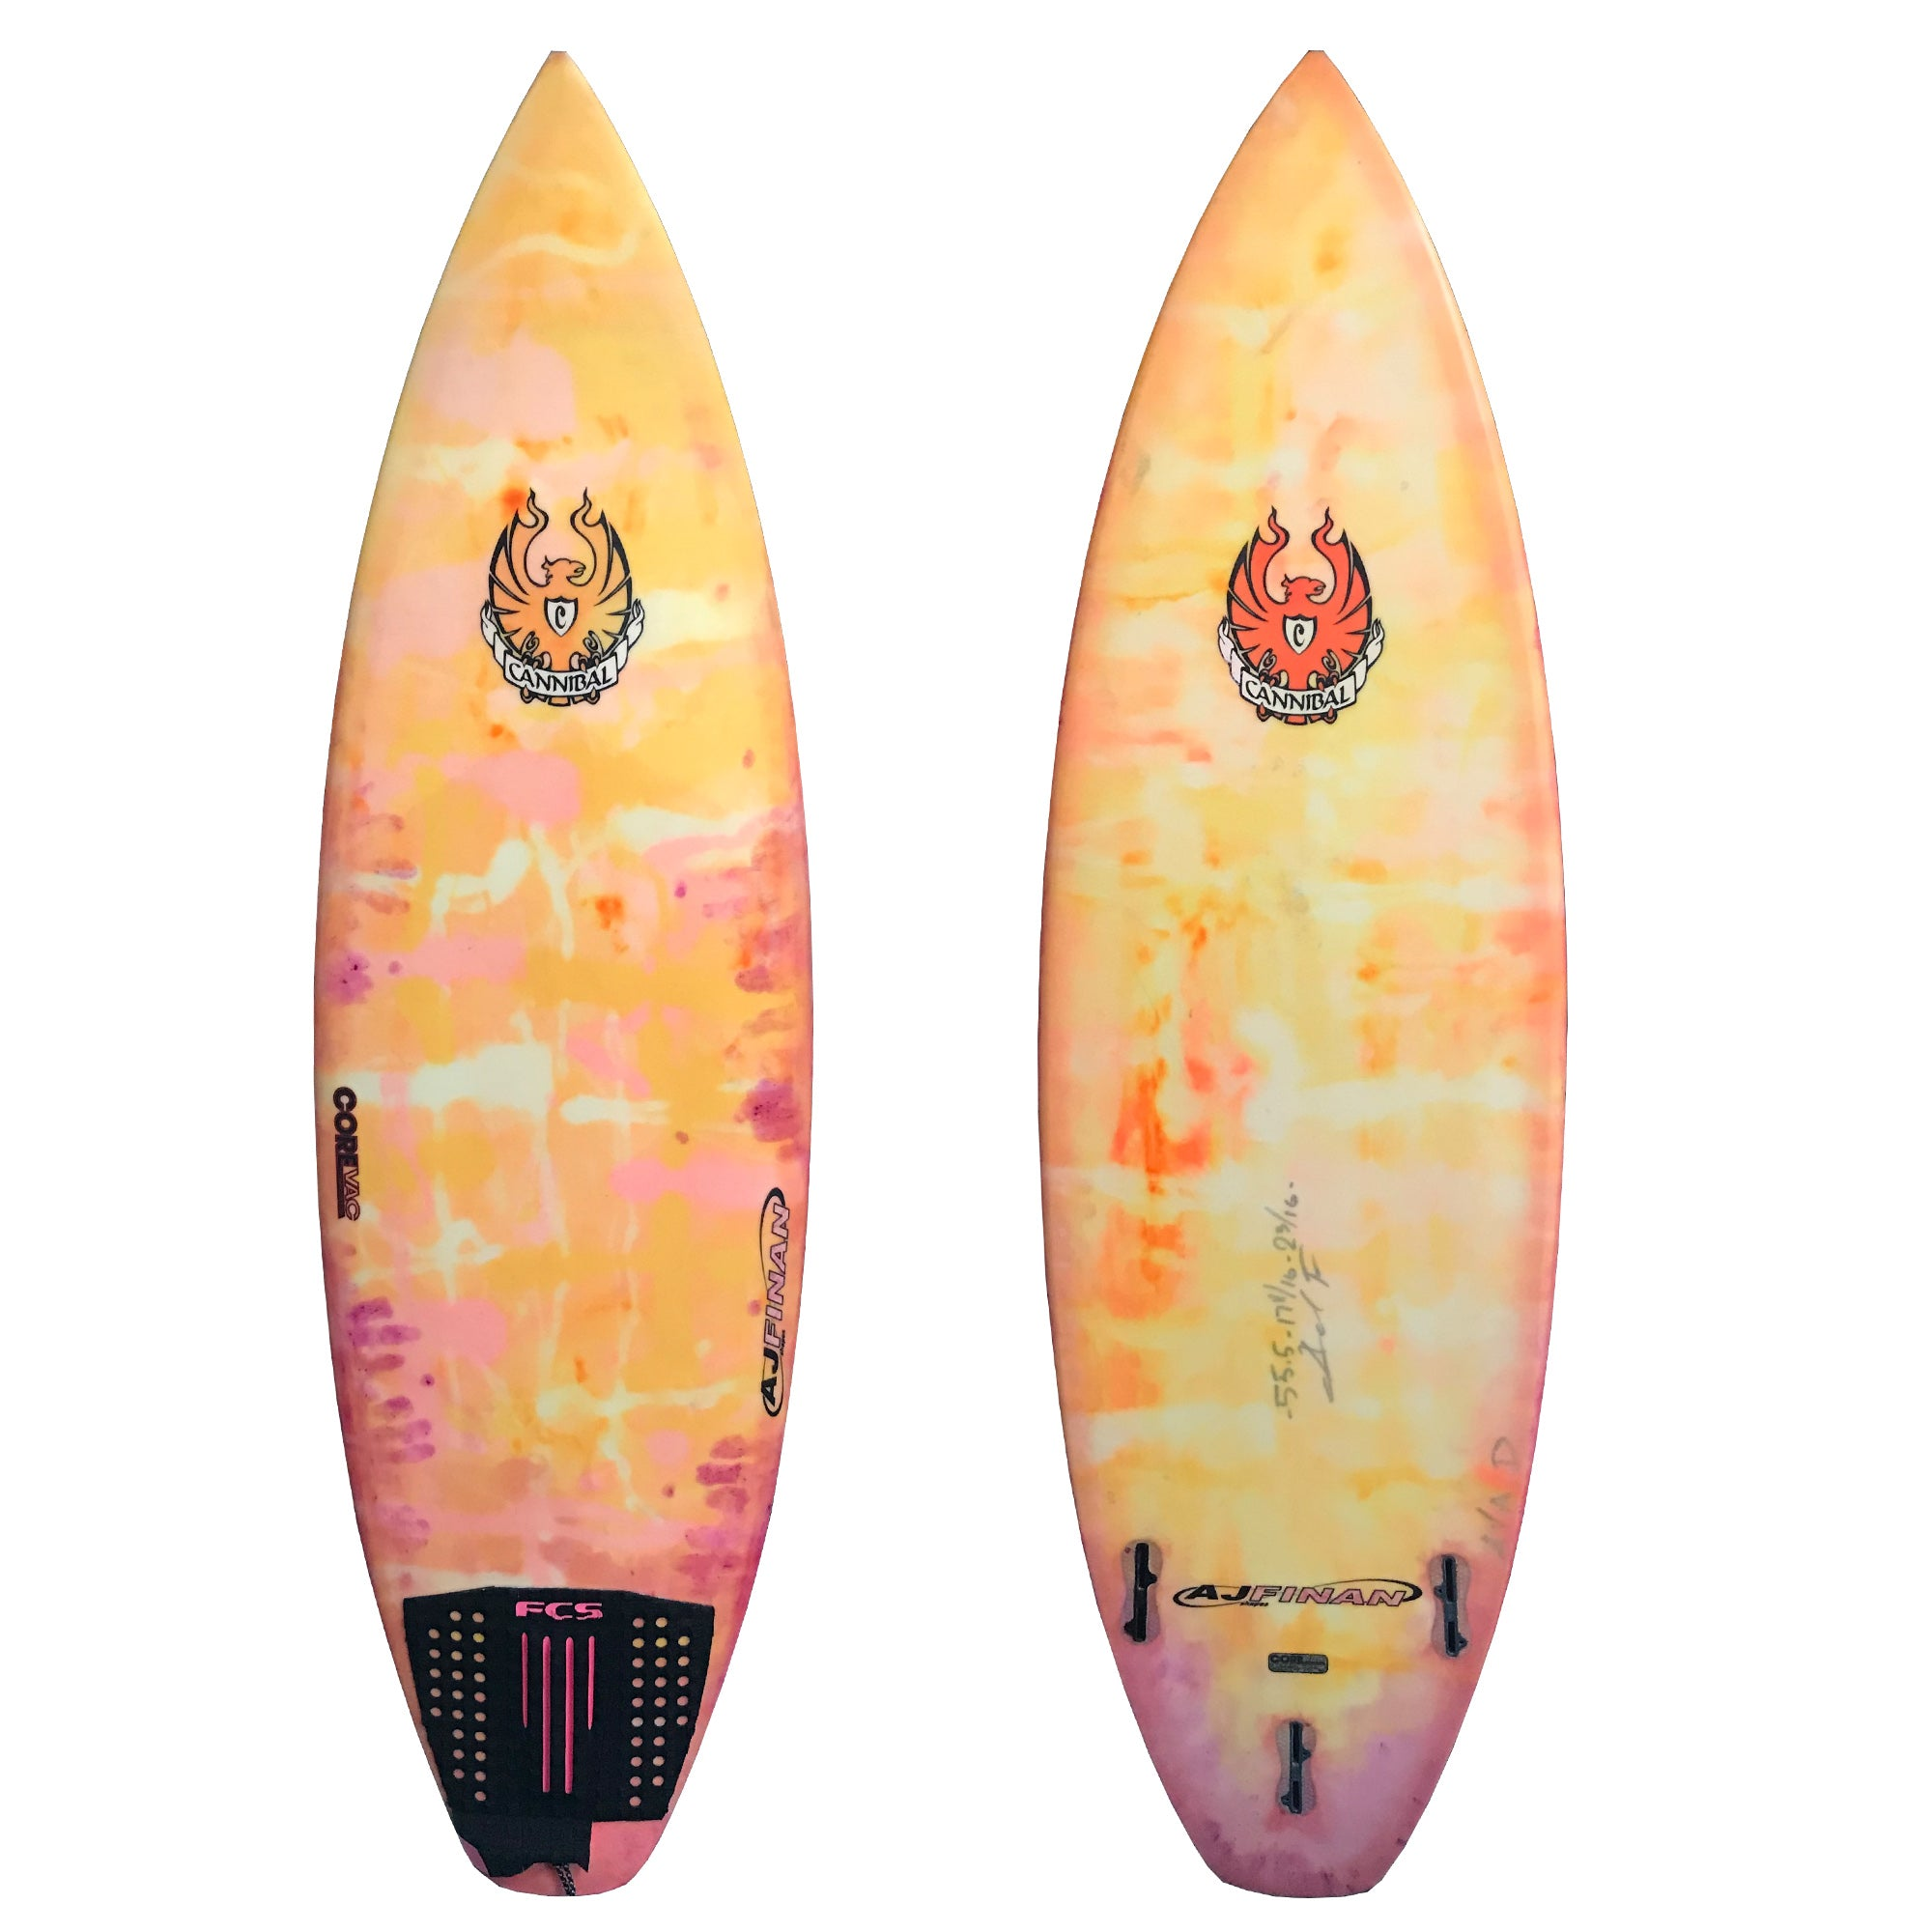 "Cannibal ""Covert"" 5'5 1/2 Used Surfboard"